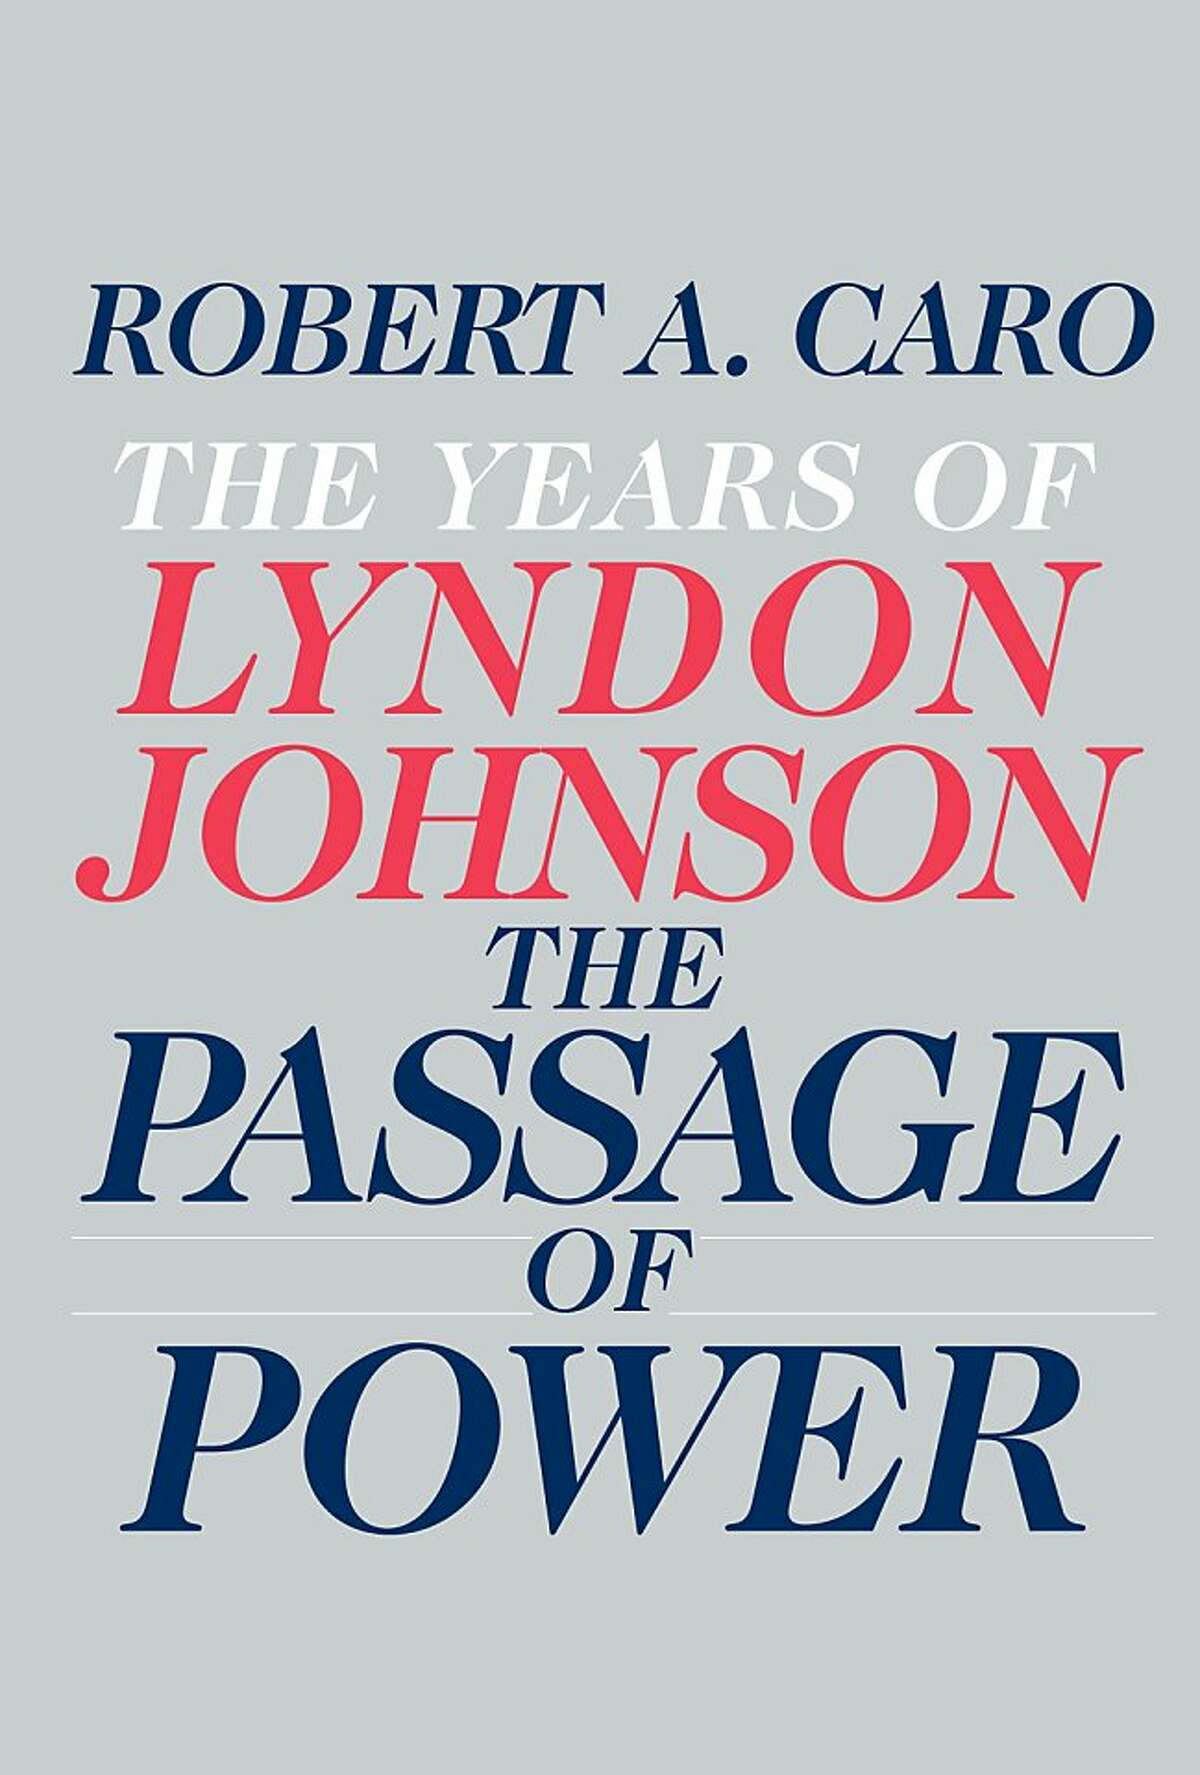 The Passage of Power: The Years of Lyndon Johnson, by Robert A. Caro